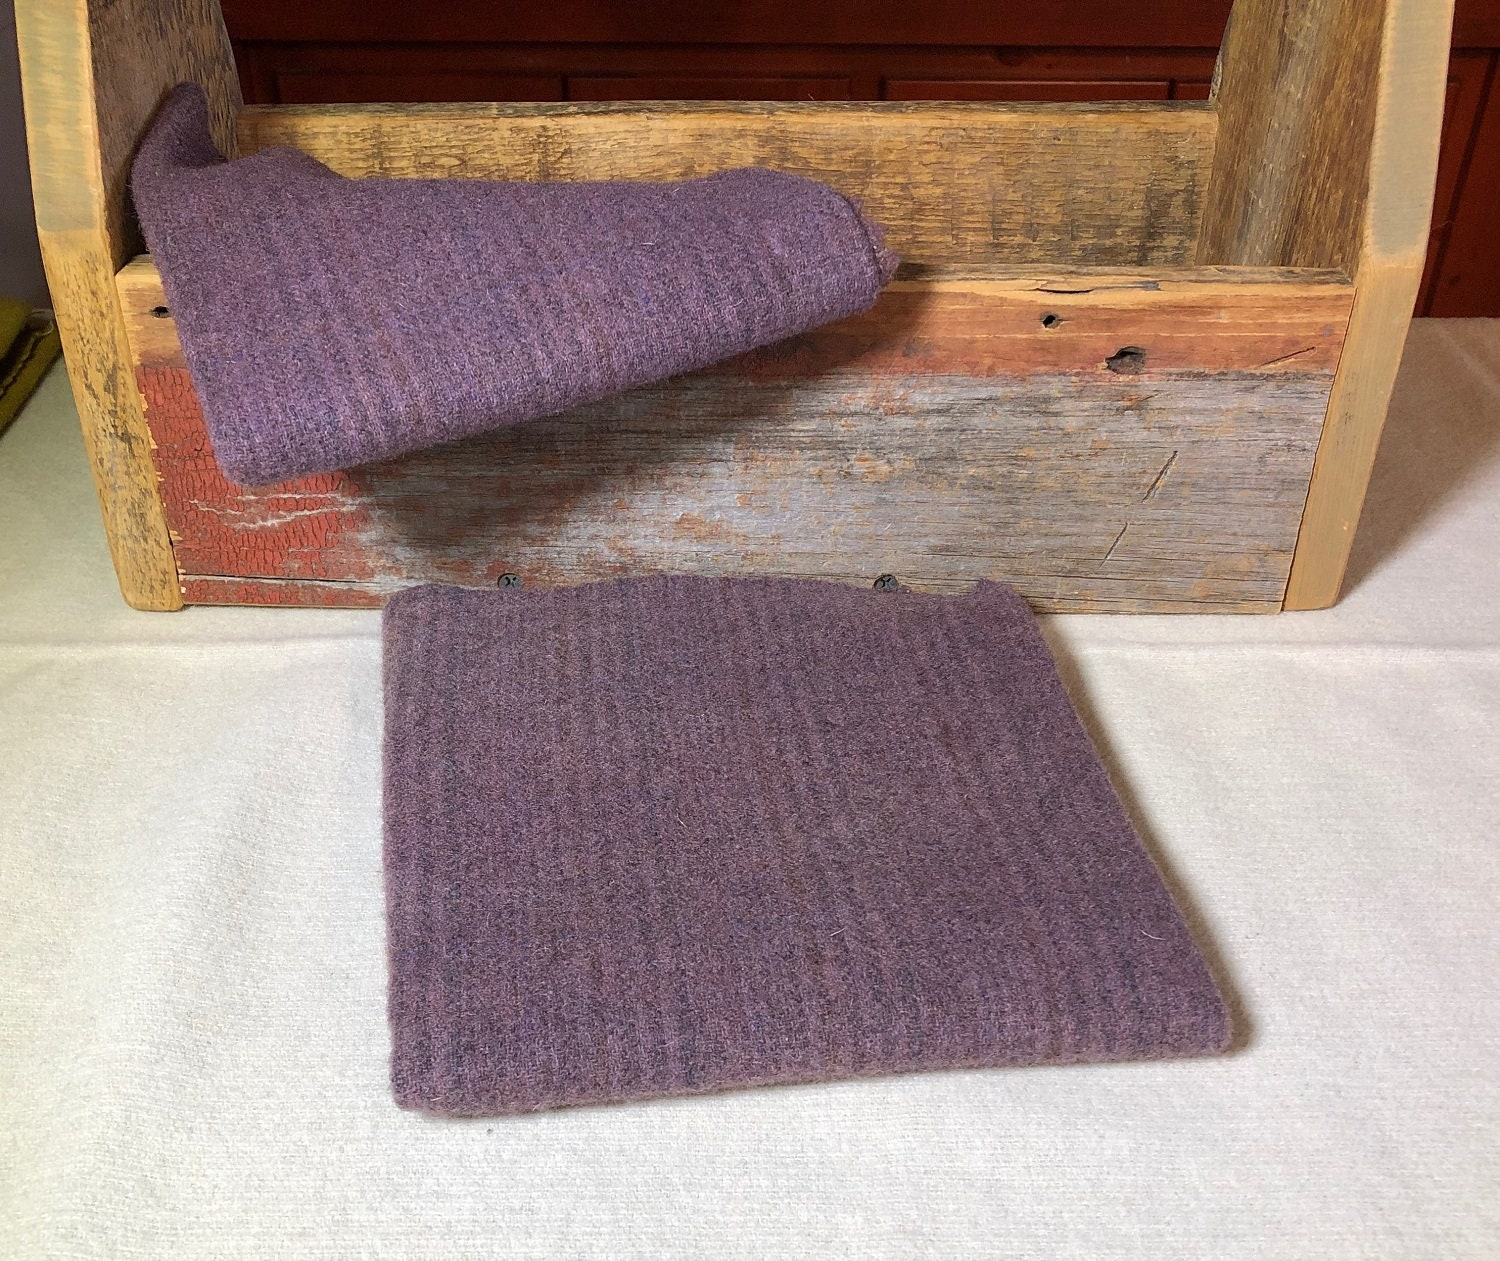 Dusty Purple Stripe Hand Dyed Wool Fabric For Rug Hooking Applique Penny Rugs Fiber Arts